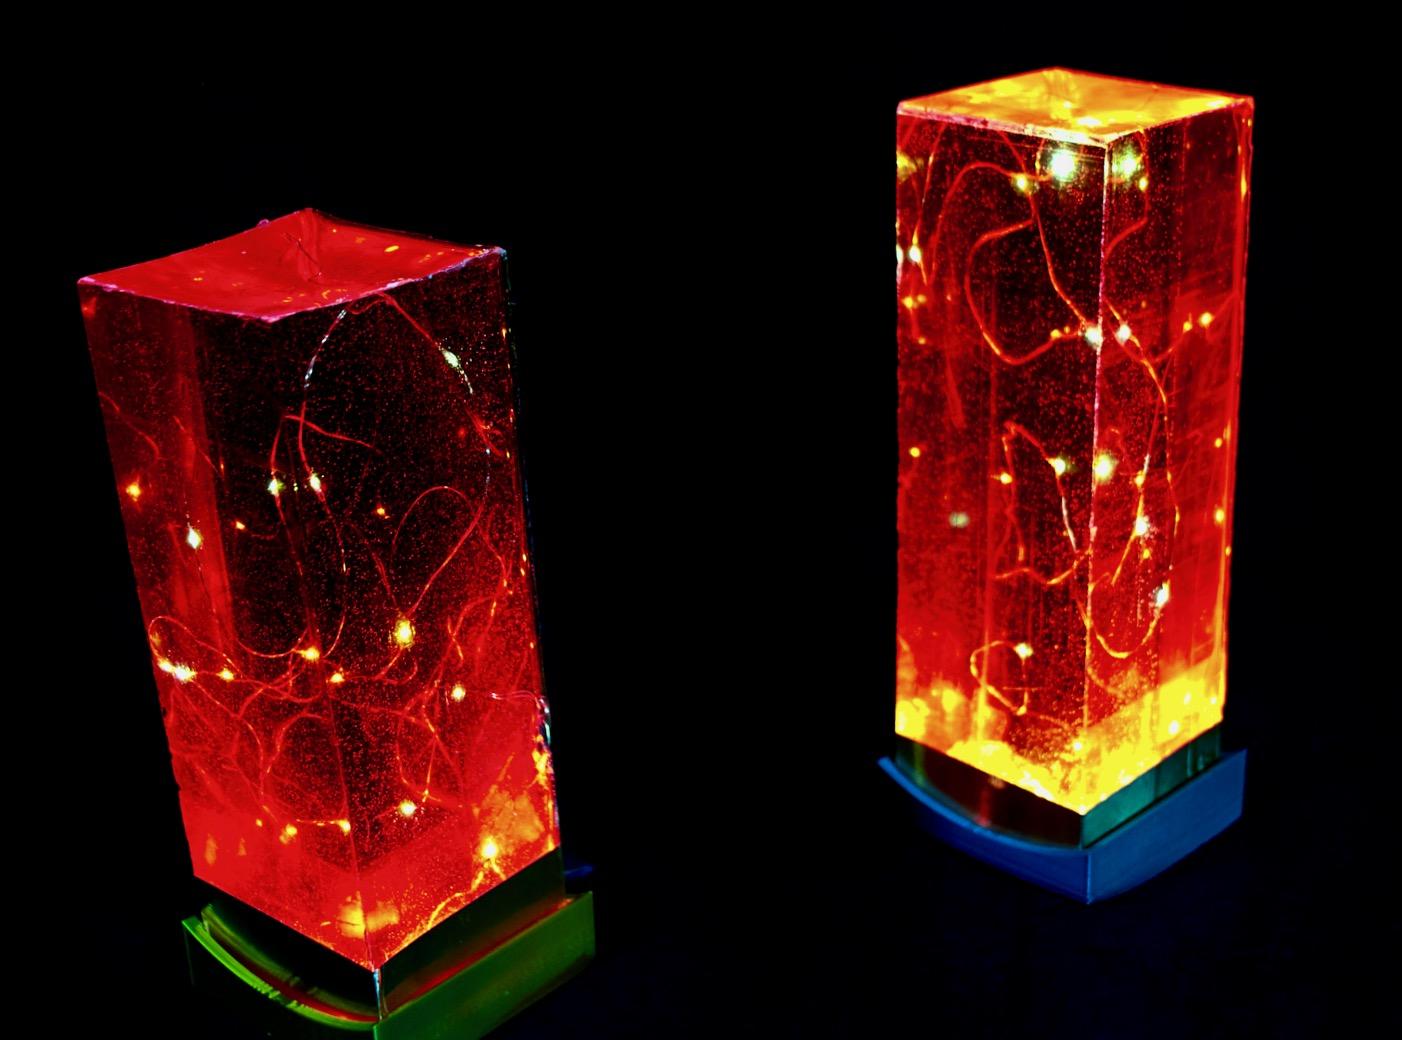 projects_Resin_Torches_03_(1).jpeg